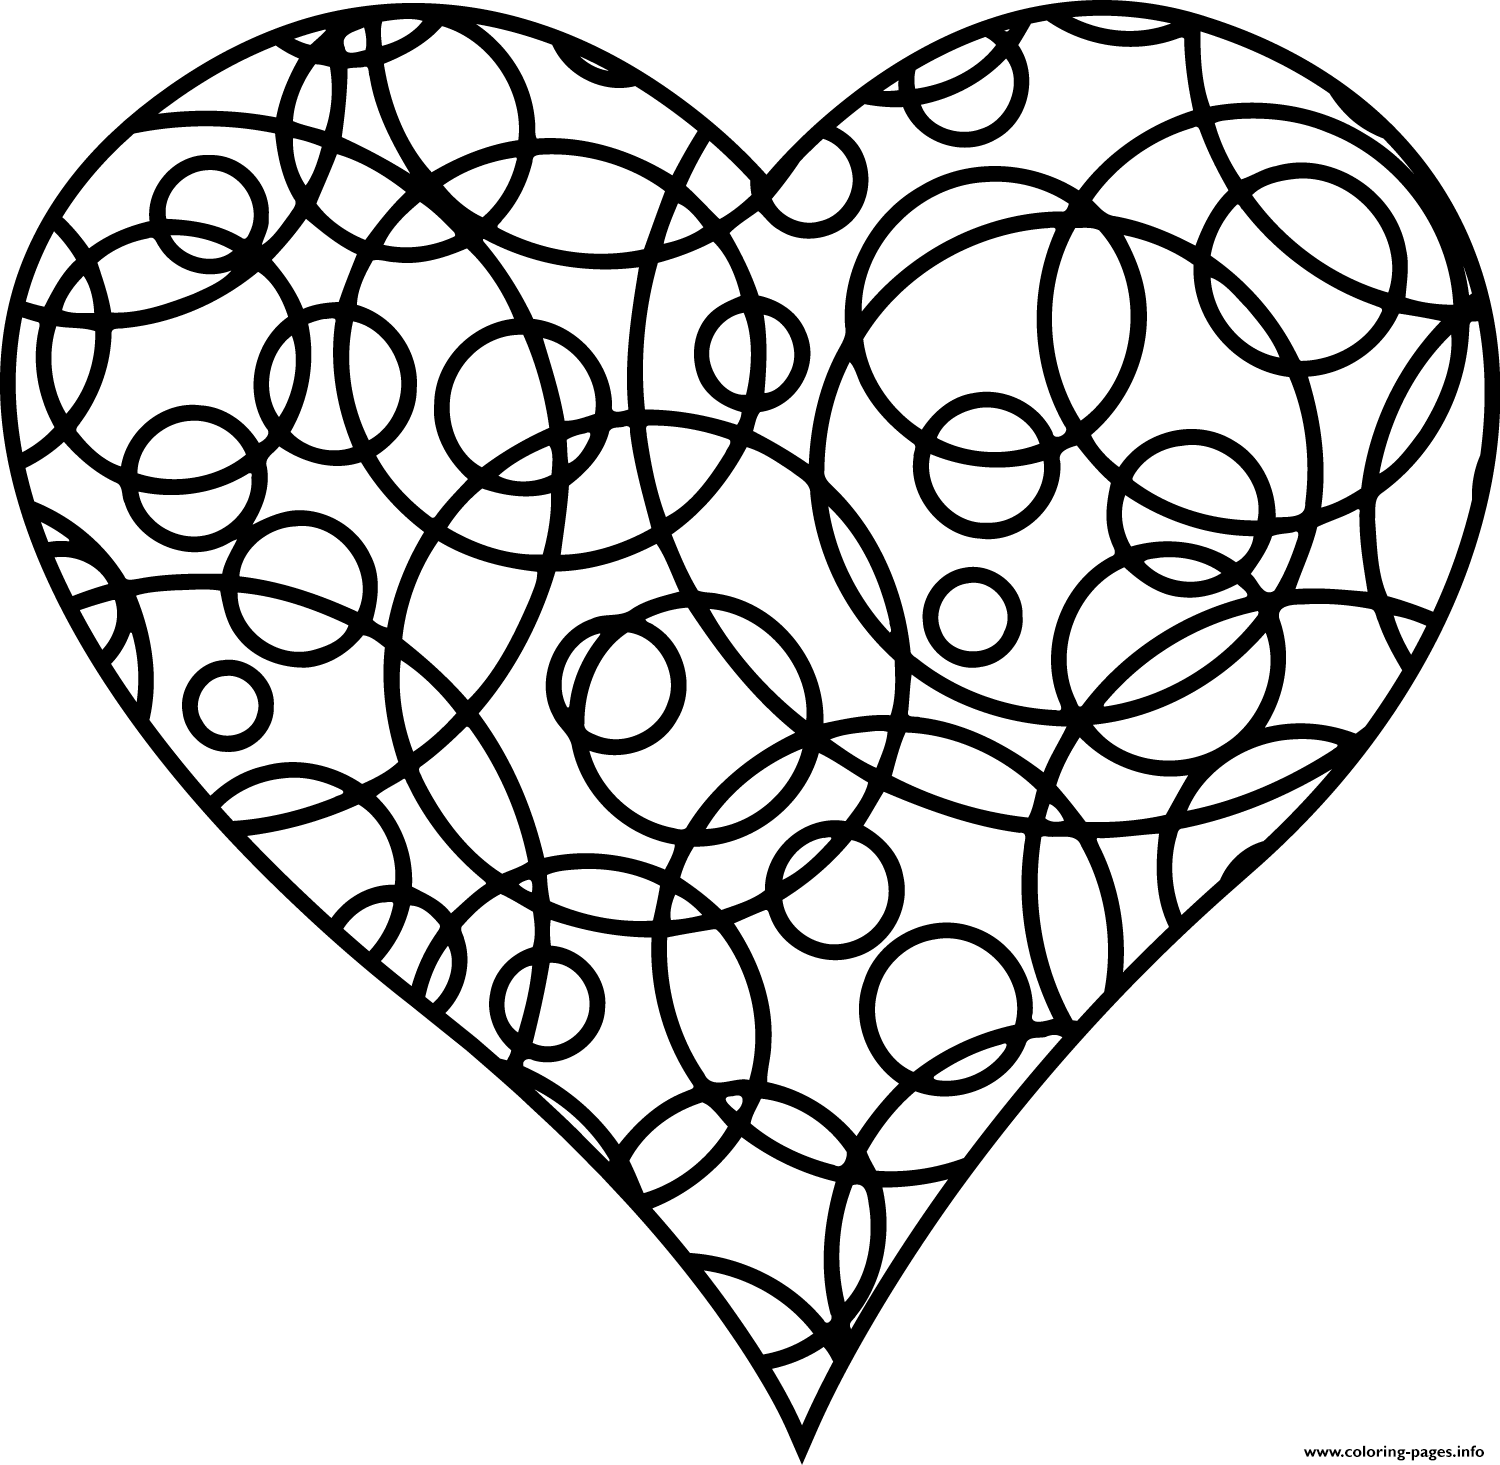 Patterned Heart coloring pages